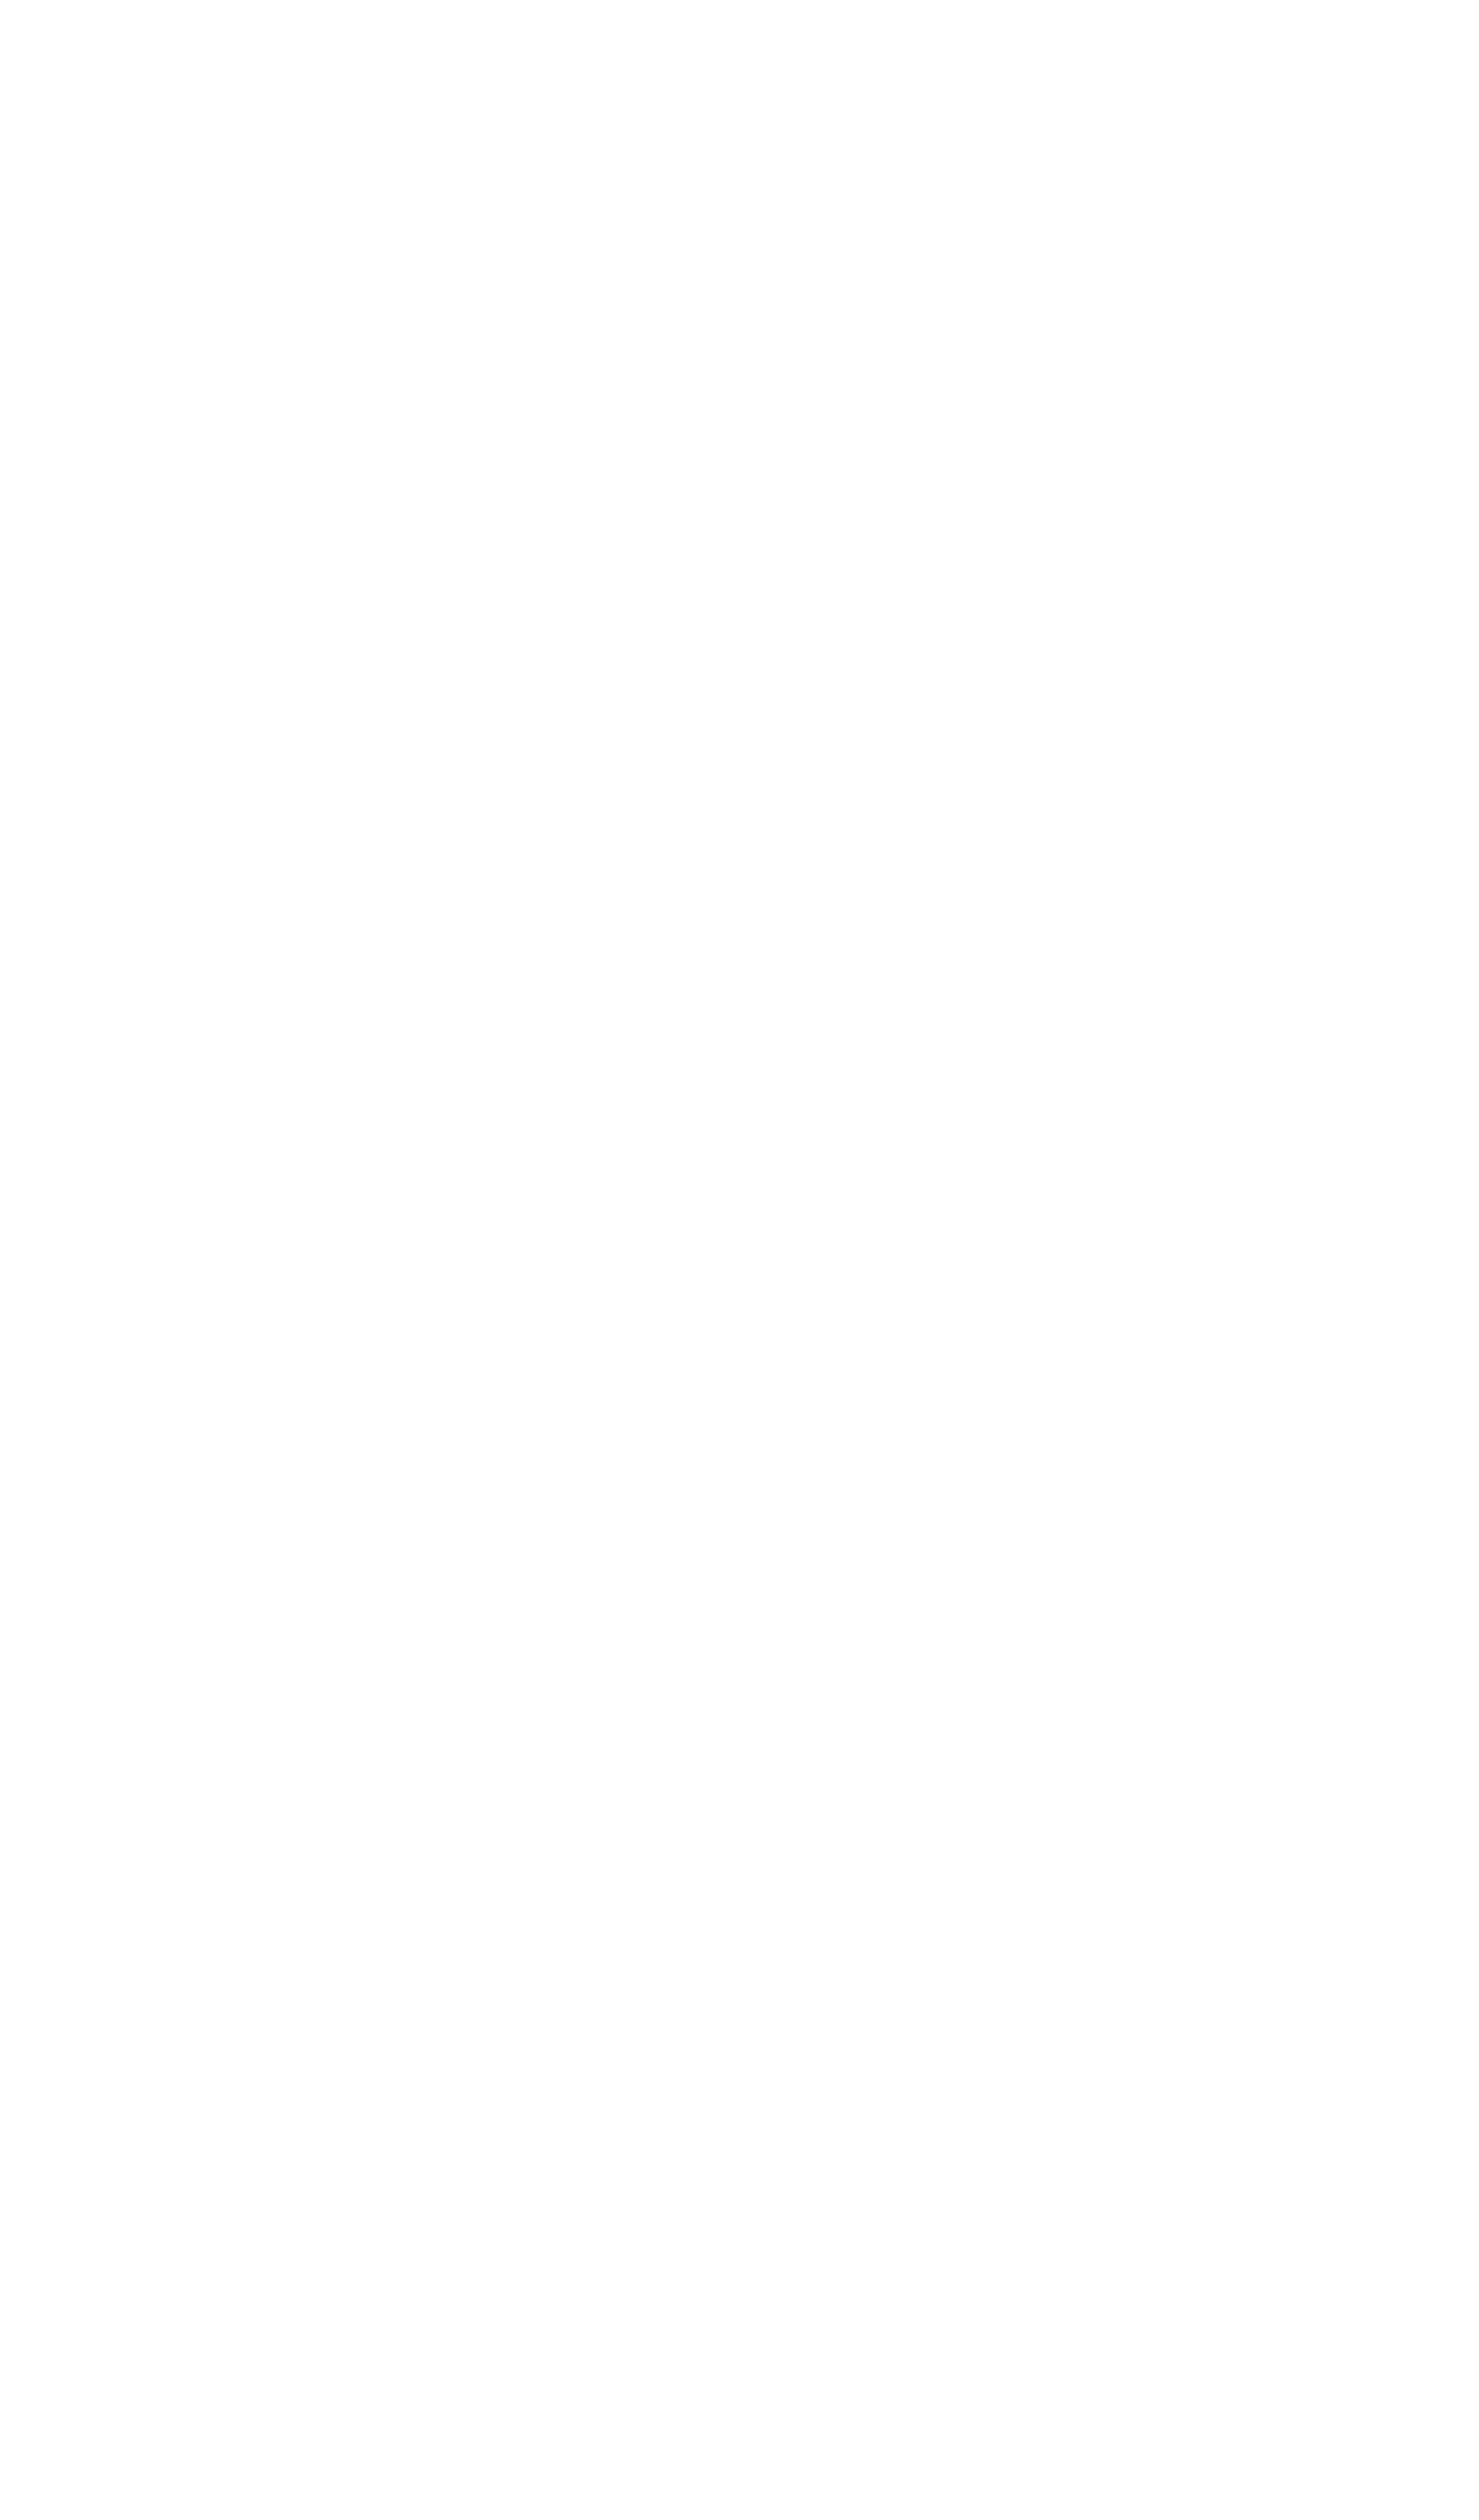 Sullivan Training Systems